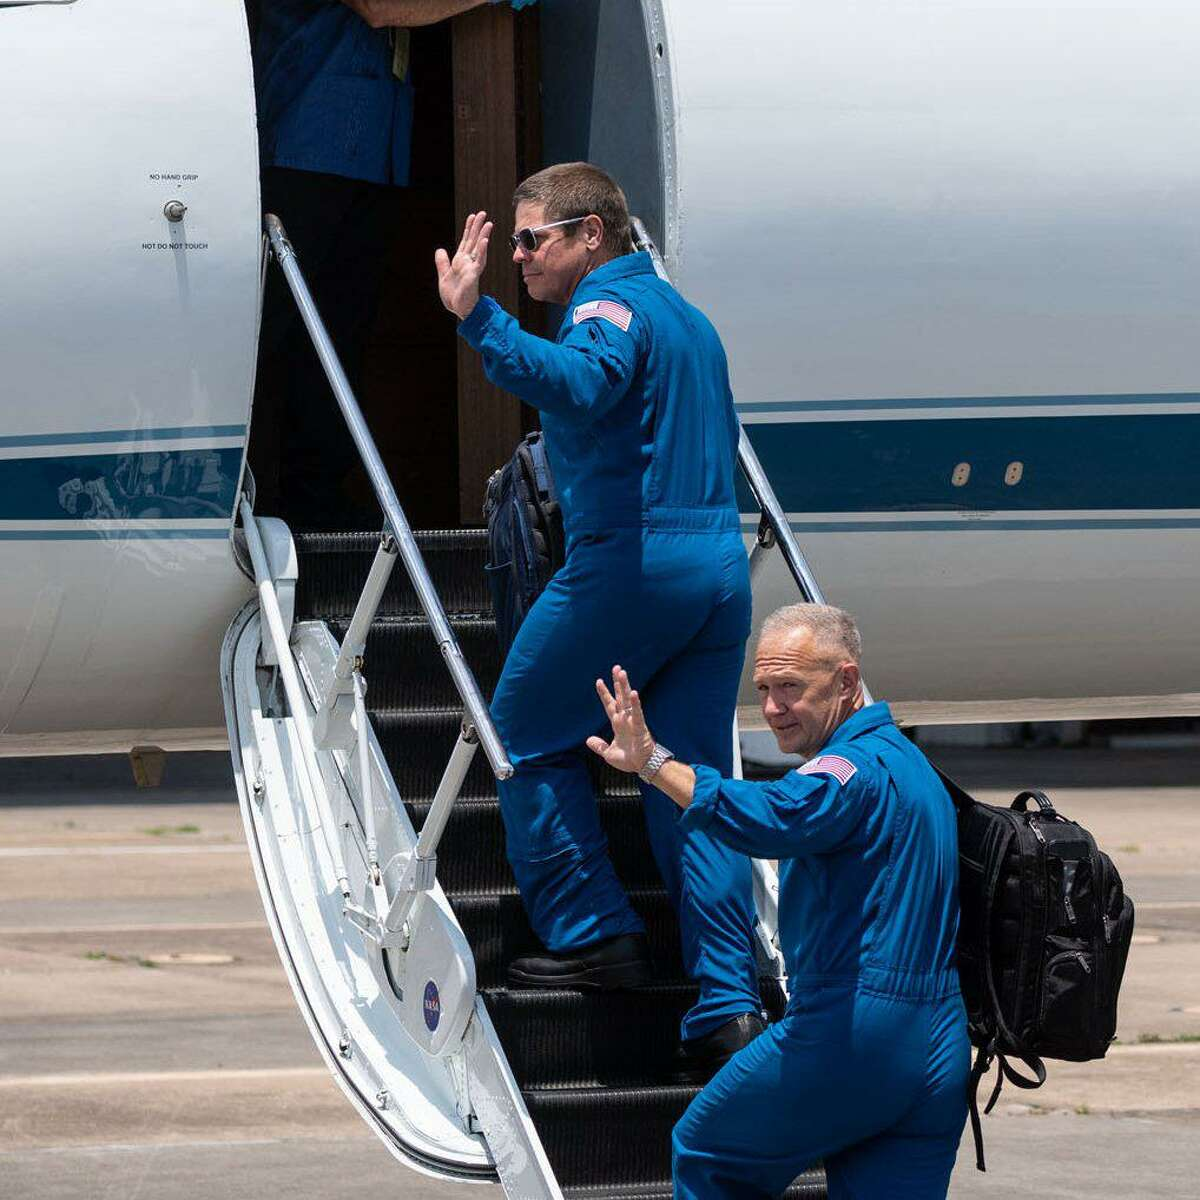 Astronauts Bob Behnken, top, andDoug Hurley board a planeat Ellington Airport on May 20, 2020. They are departing Houston for Kennedy Space Center in Florida, where they will launch into space on May 27 on a SpaceX Falcon 9 rocket and Crew Dragon spacecraft.